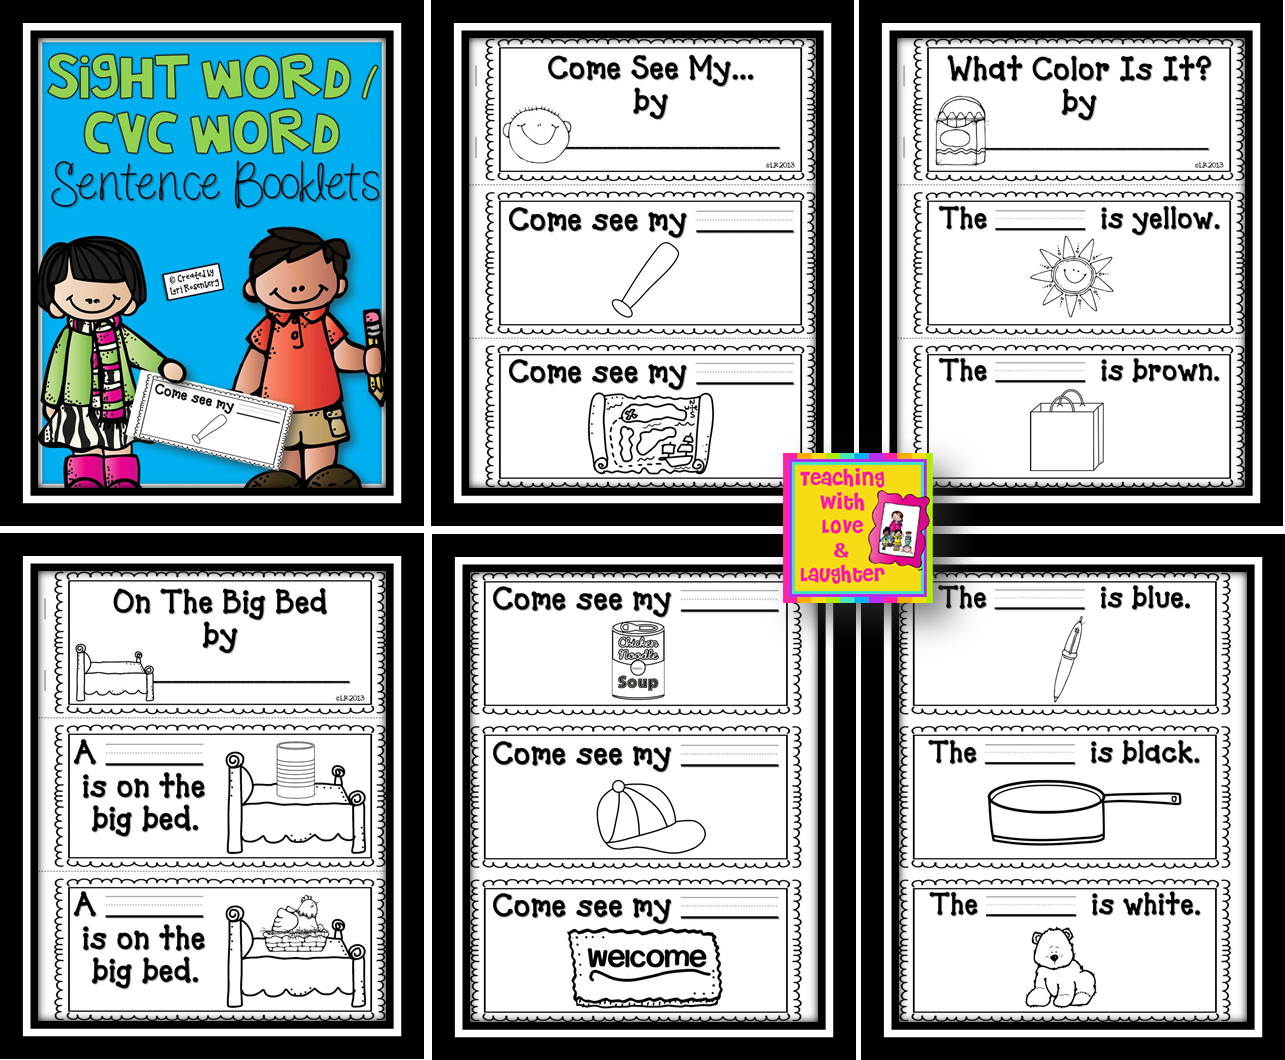 word within the word book 1 pdf